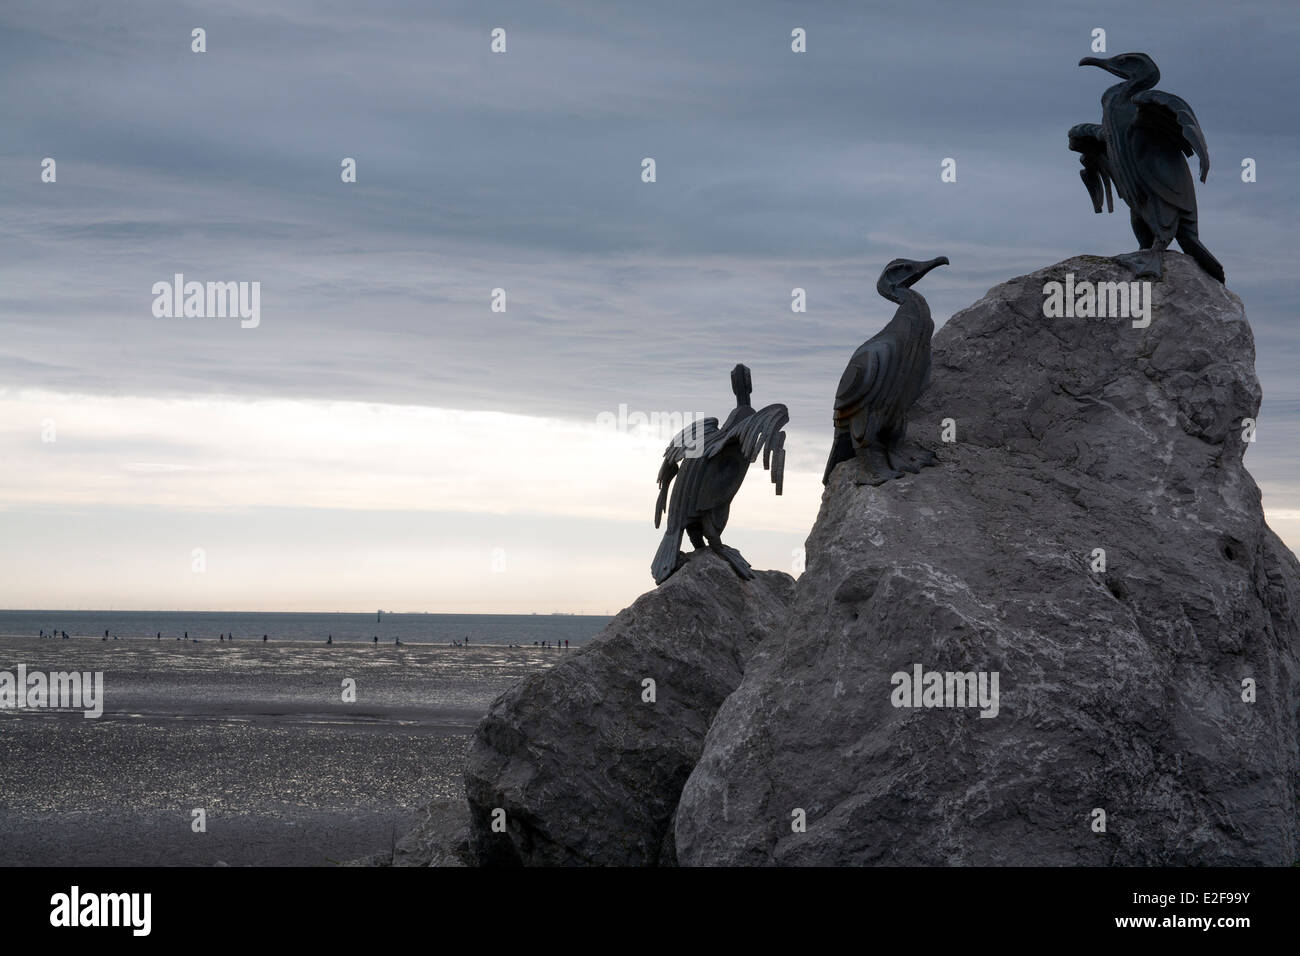 Statues that form part of the TERN project on stones overlooking Morecambe Bay, Lancashire, England, UK - Stock Image